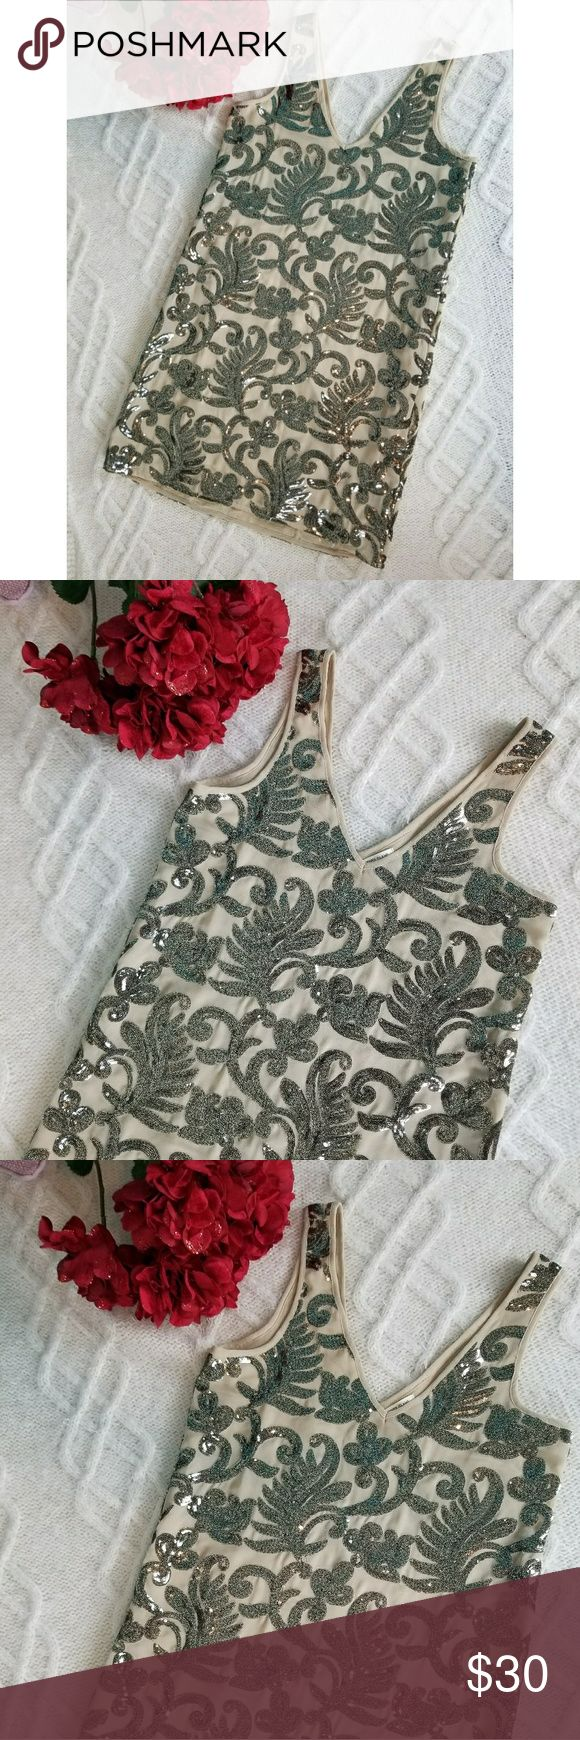 River island Sequin leaves sleeveless dress beaded Grey cream beaded dress  Tank top sleeves Fun for parties and new years UK 8 is us 4 River Island Dresses